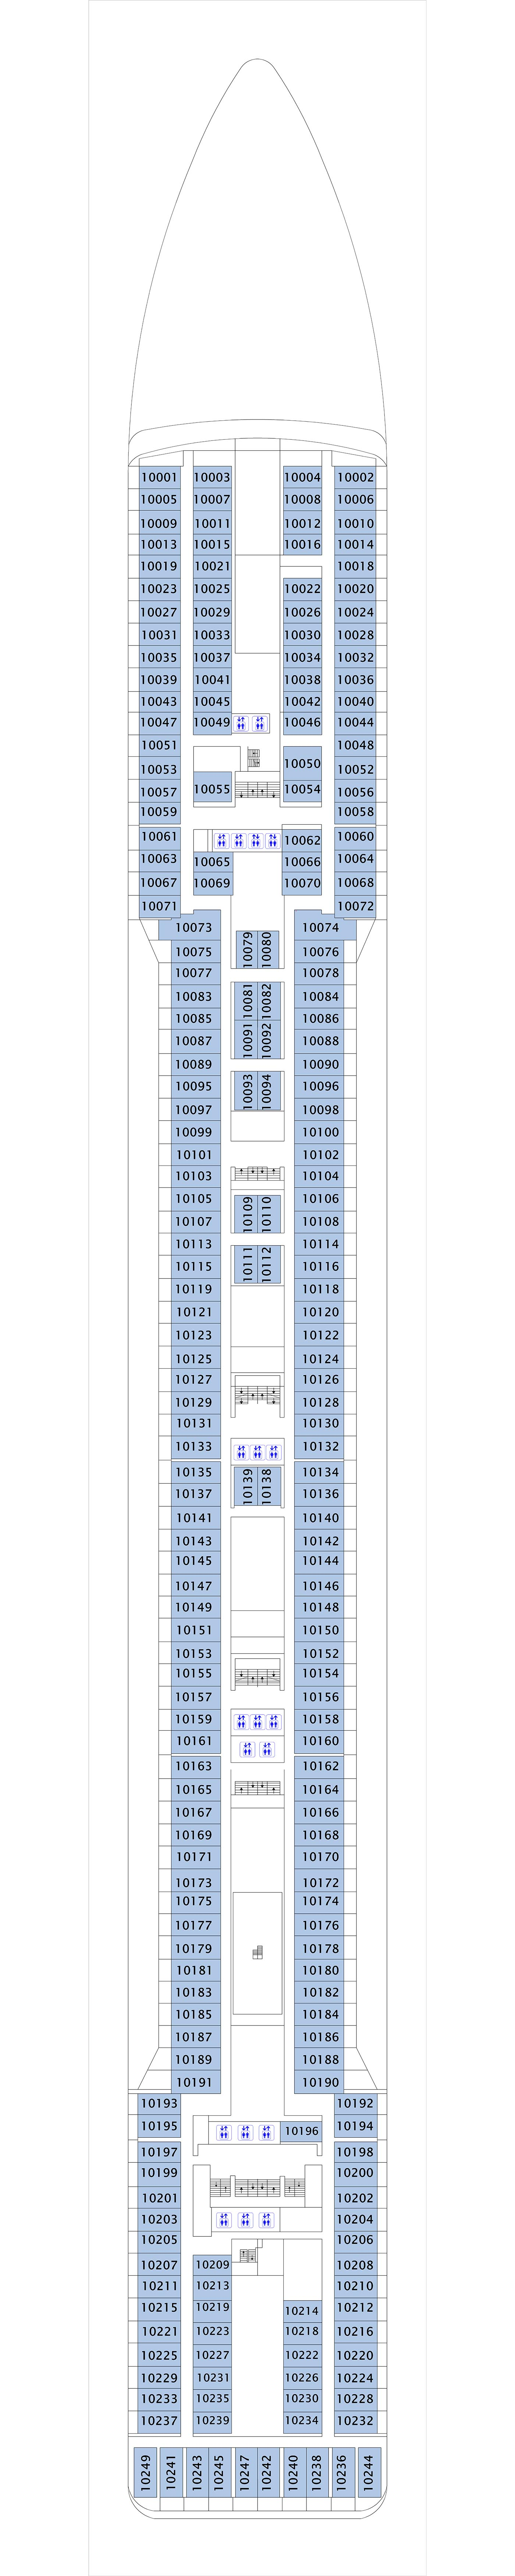 MSC Magnifica deck plan 10